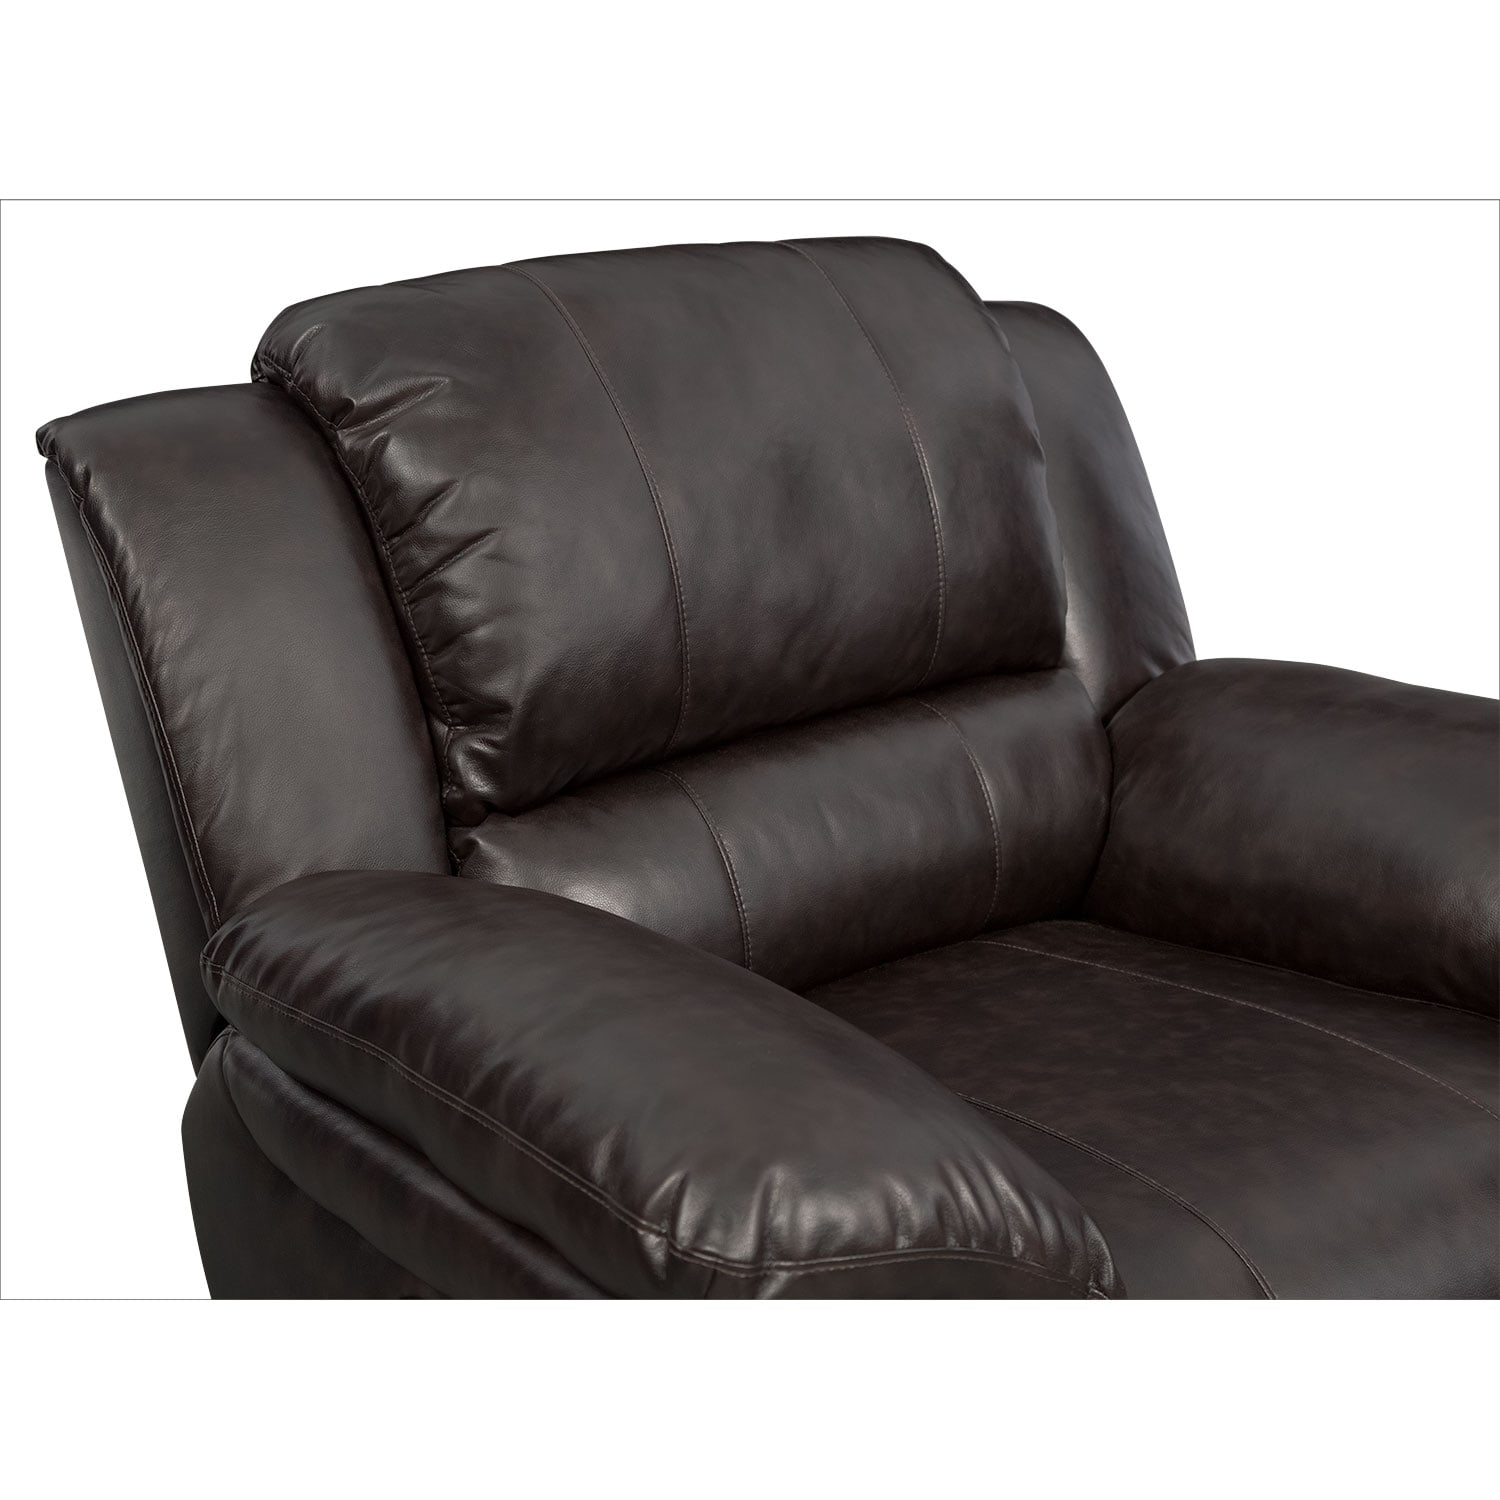 Aldo Power Reclining Sofa Loveseat and Recliner Set Brown